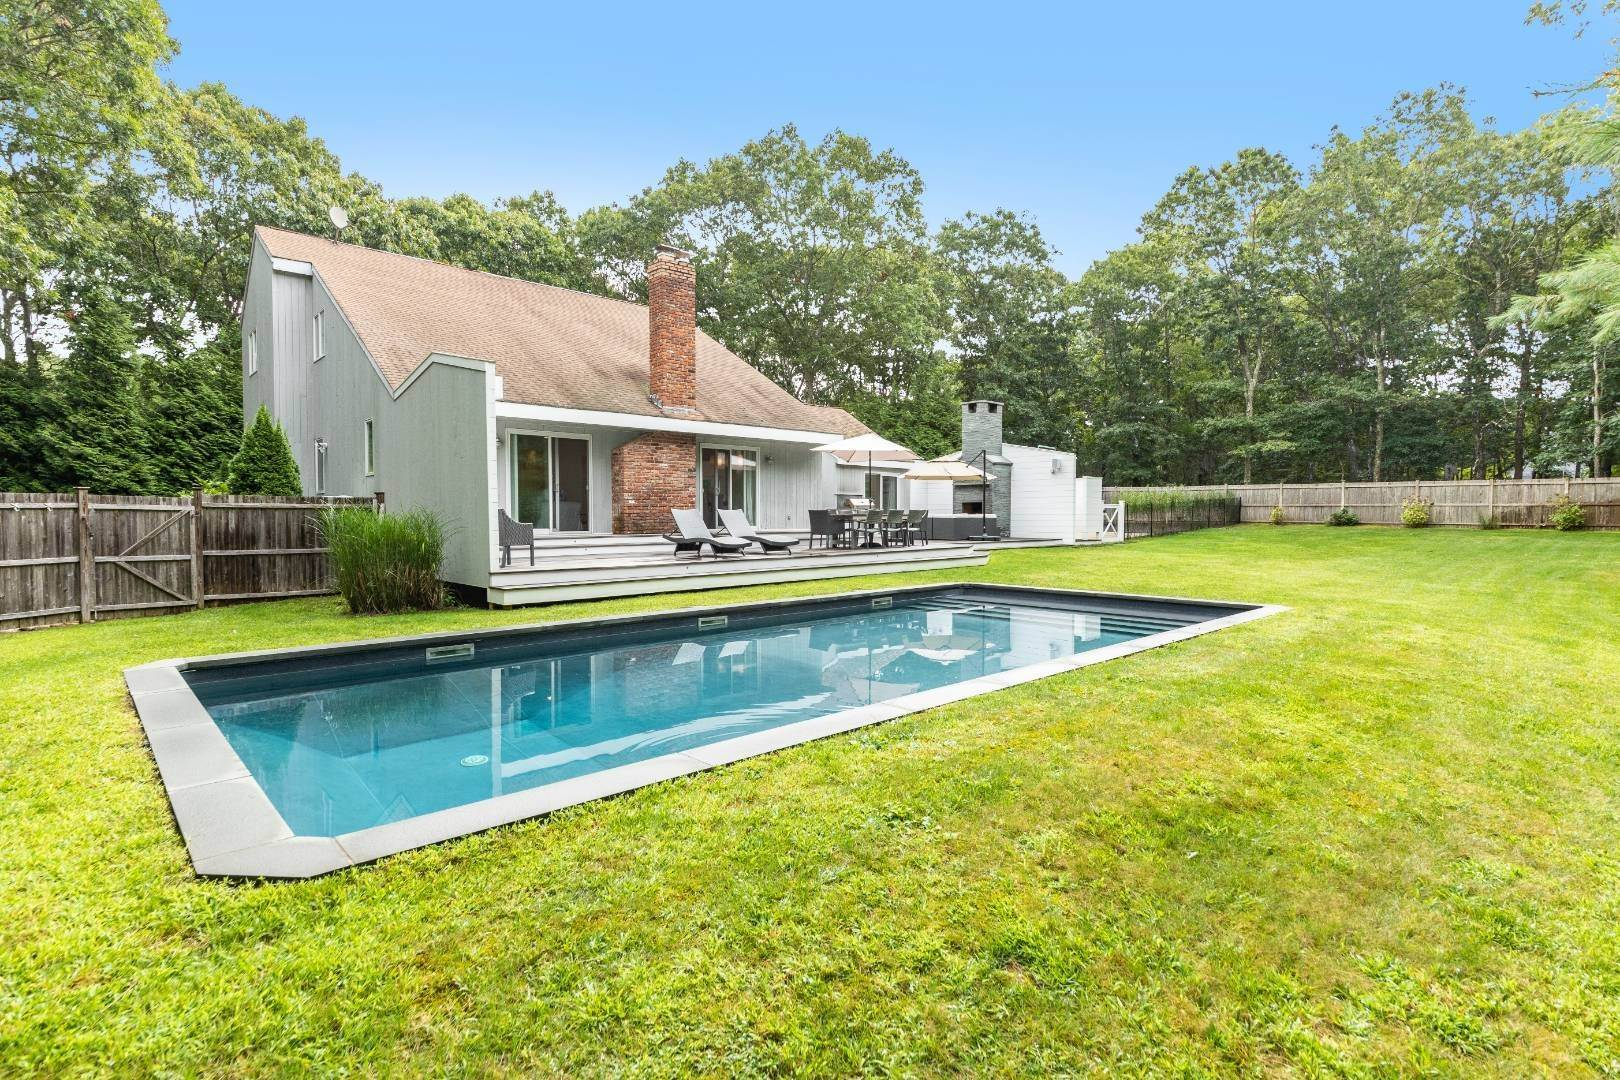 Single Family Home for Sale at Modern Saltbox In Wainscott 1 Red Fox Lane, Wainscott, NY 11937